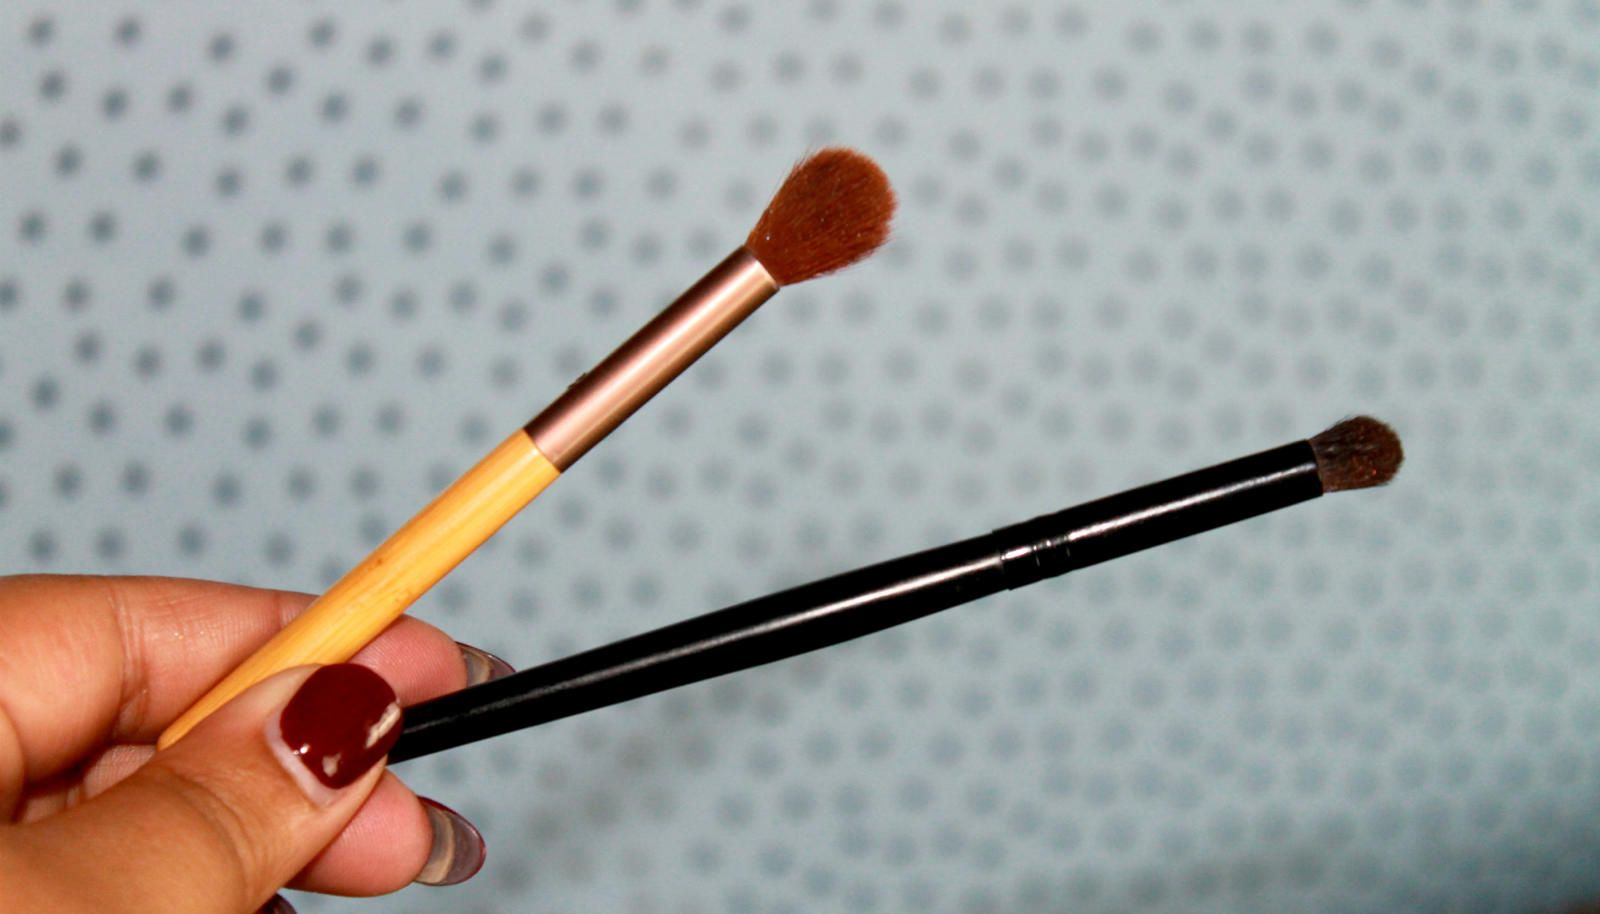 The Only Two Brushes You Need To Blend Eye Shadow Like A Boss. I use these brushes to blend, blend, blend!